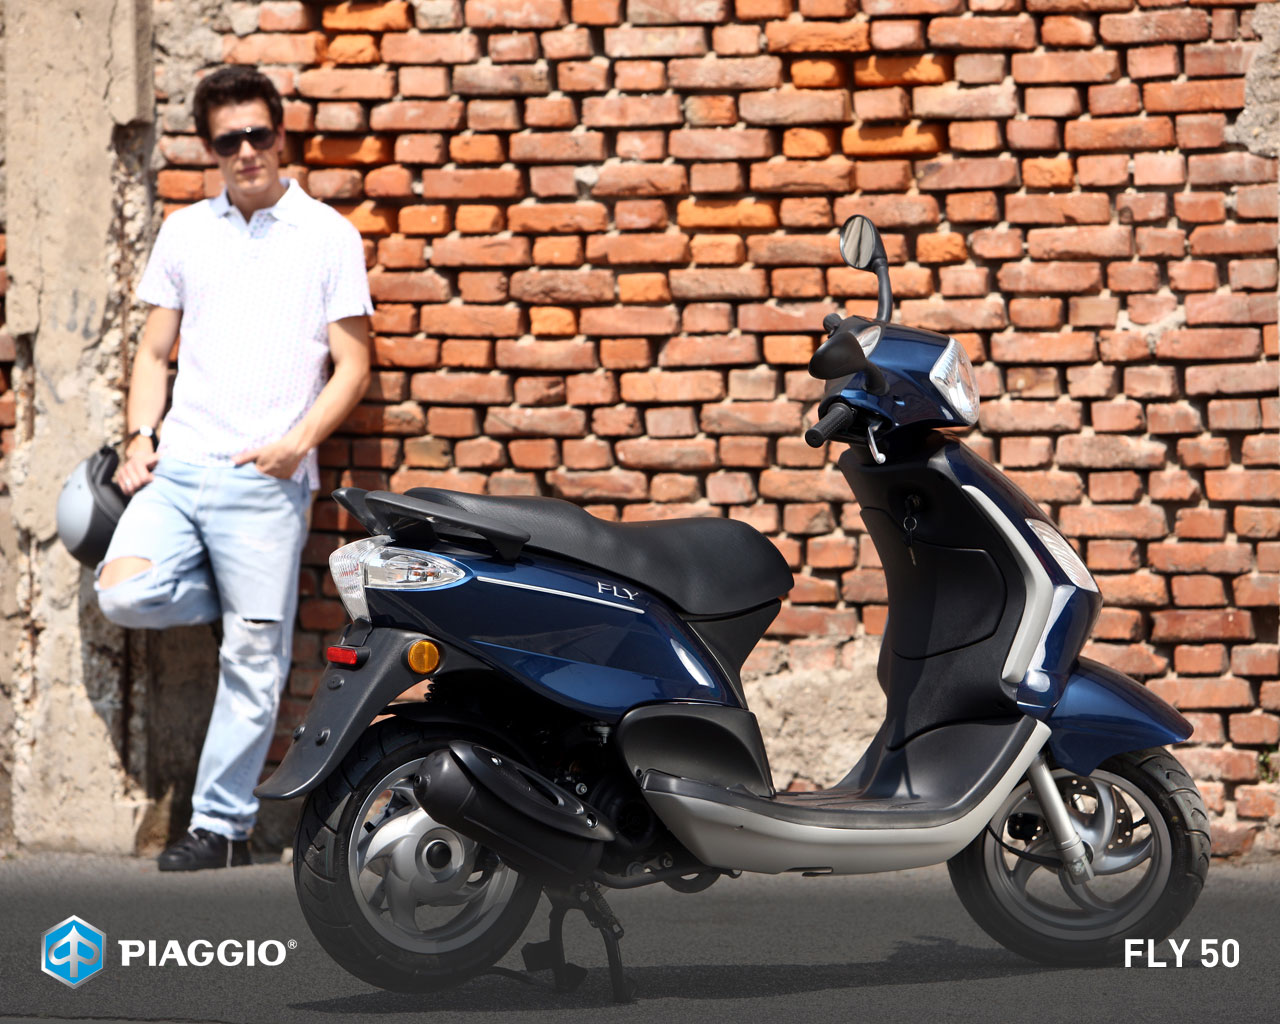 Piaggio Fly 50 images #120112